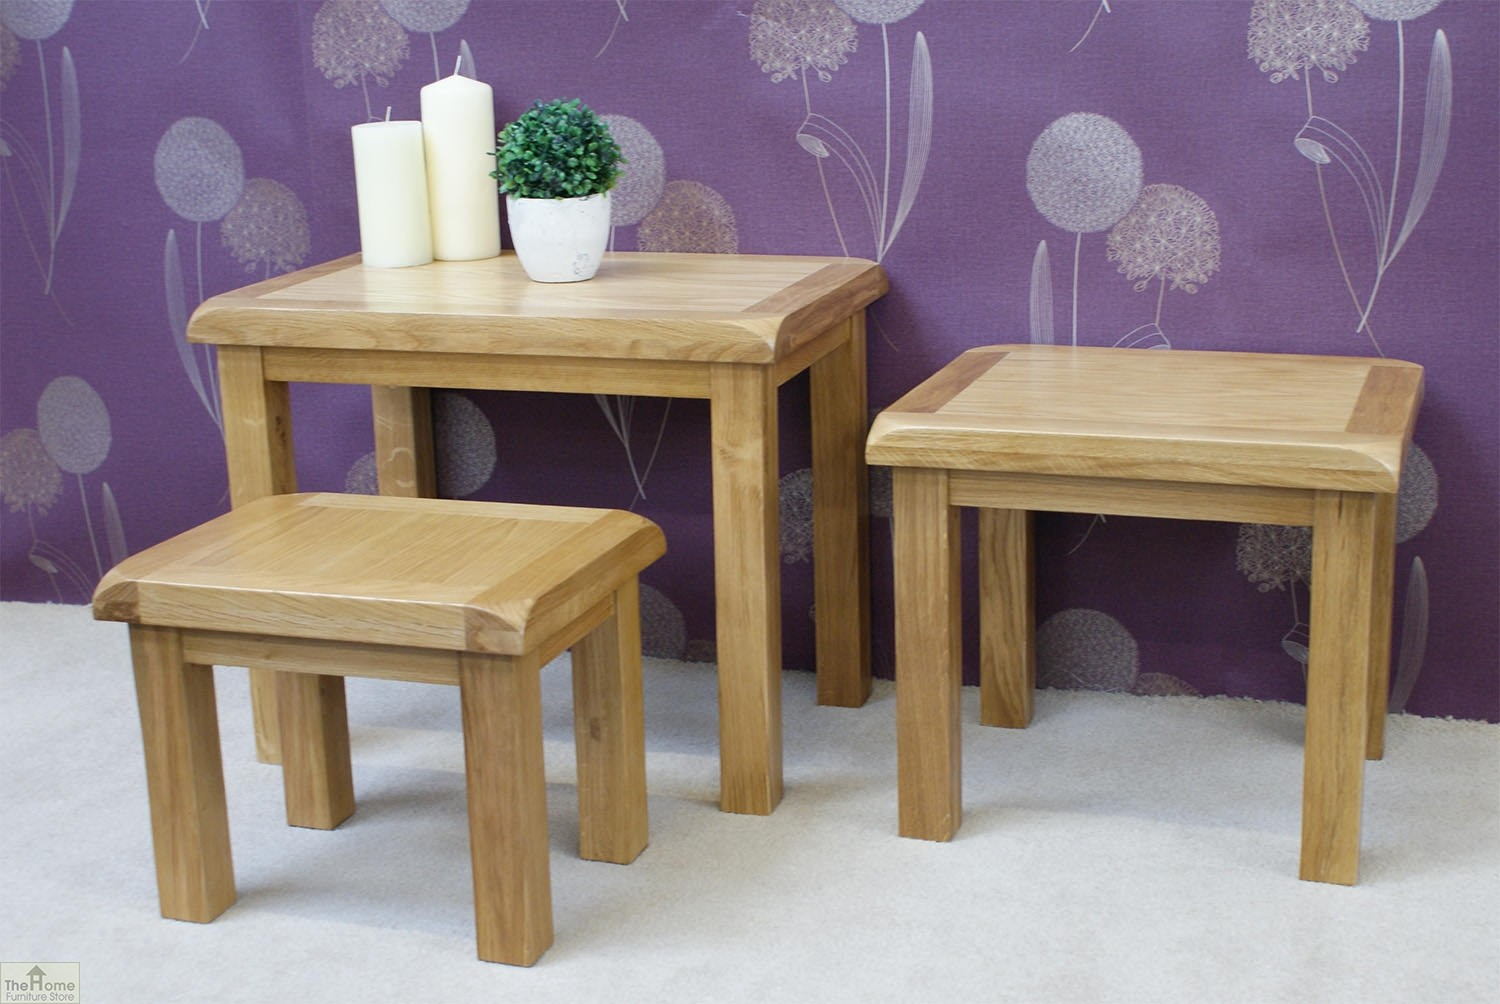 Farmhouse oak nest 3 tables the home furniture store Home furniture outlet uk